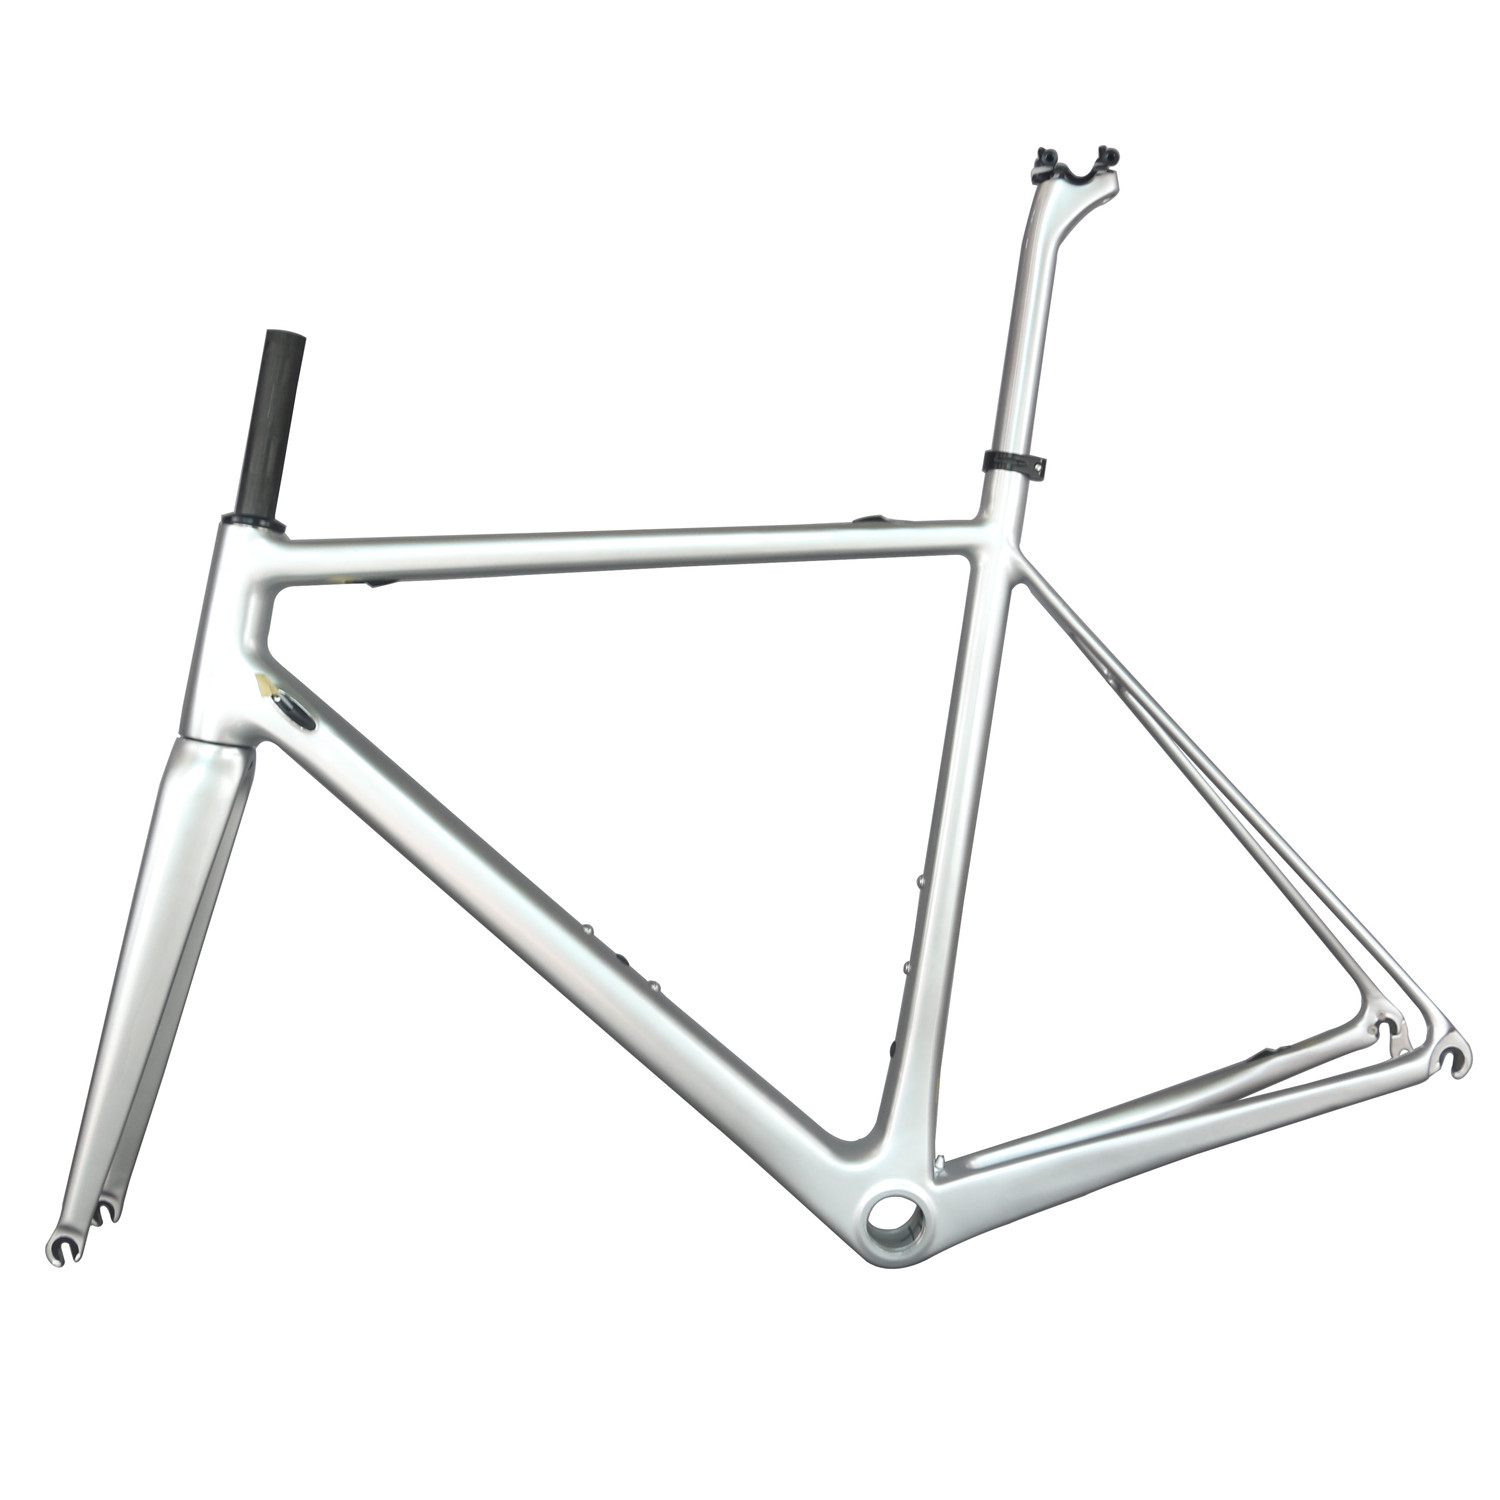 2020 Super Light Custom Painted Metallic Silver 27.2mm Seat Post BSA And BB30 Normal Brakes Carbon Road Frame FM066